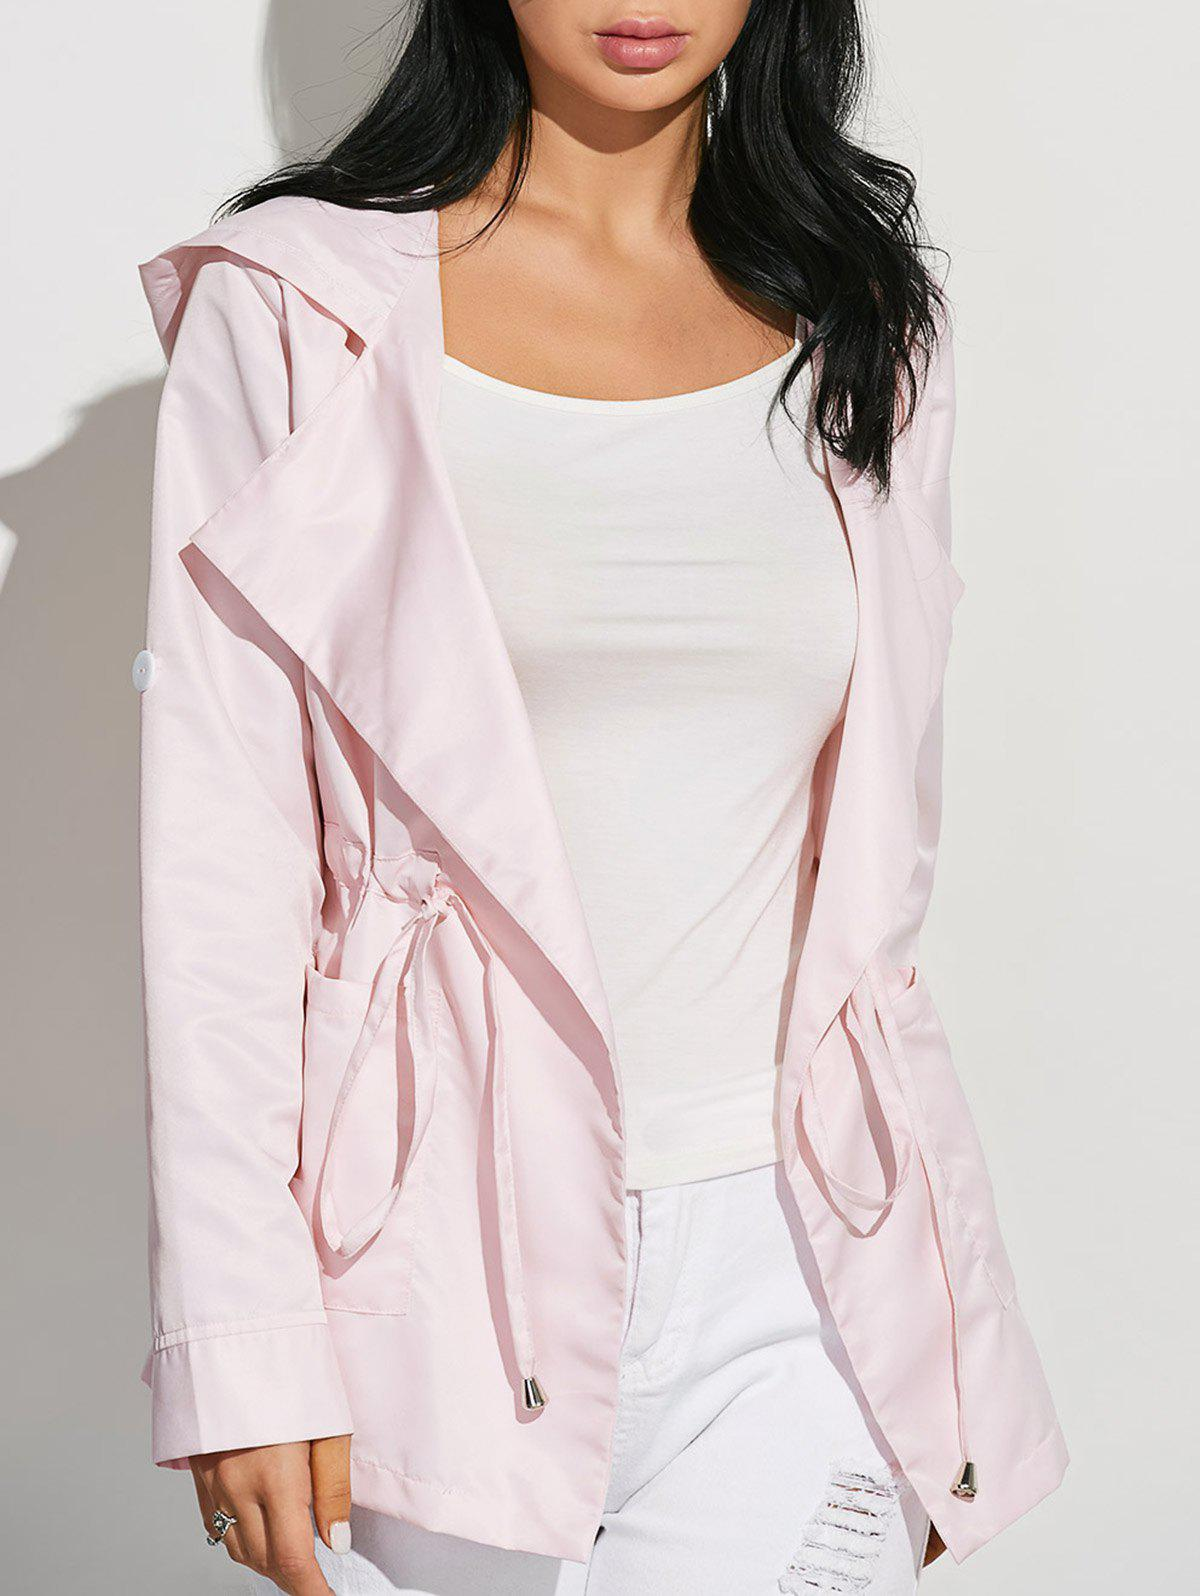 Drawstring Waist Hooded Casual Trench Jacket blue hooded trench coat with drawstring waist